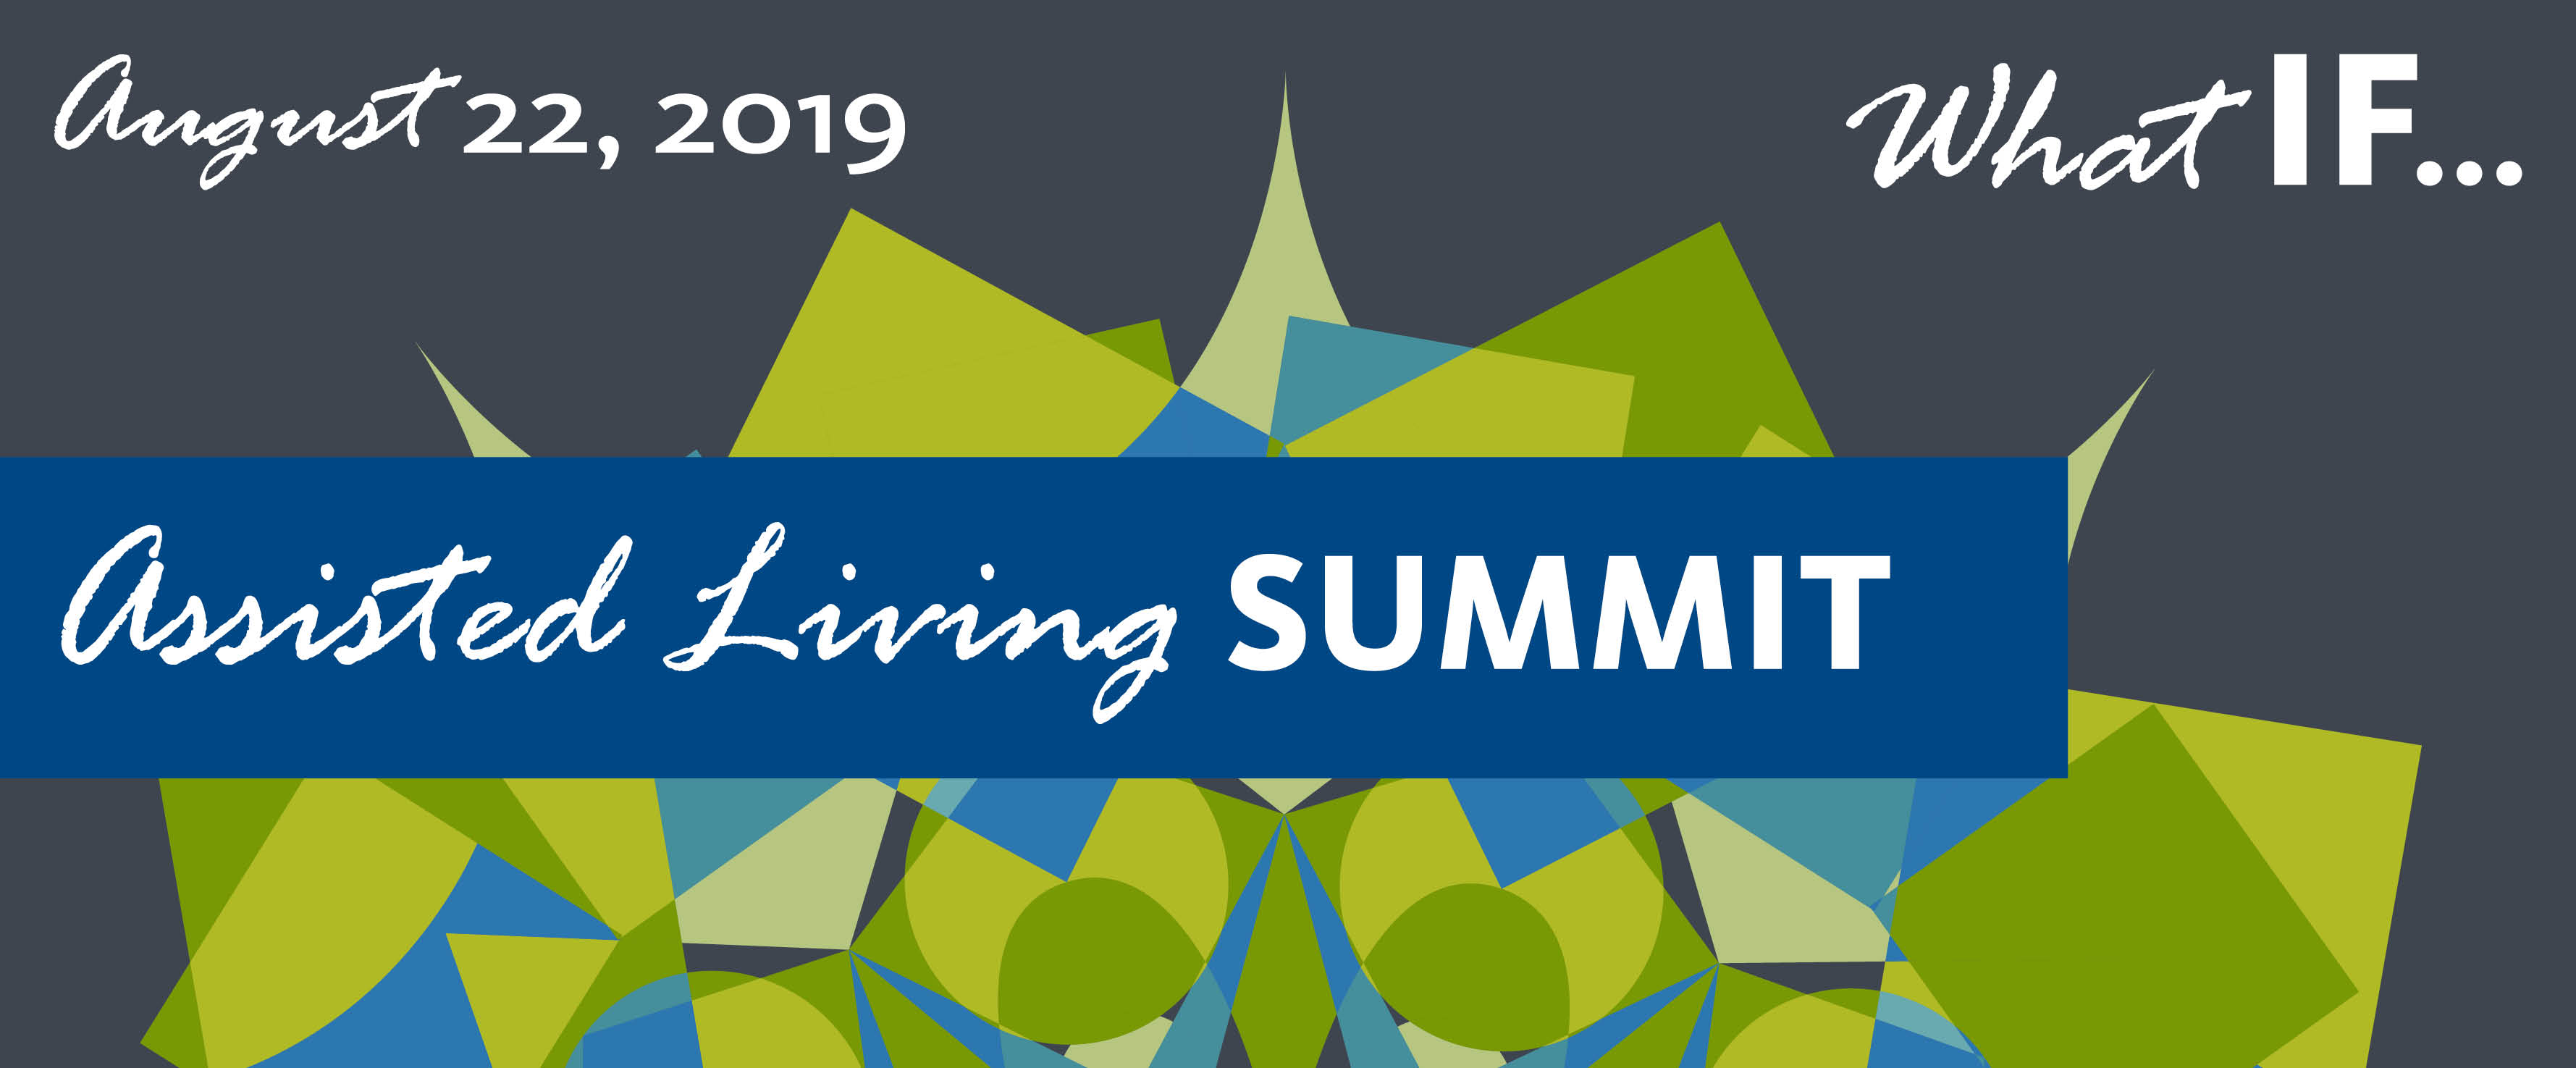 2019 Assisted Living Summit